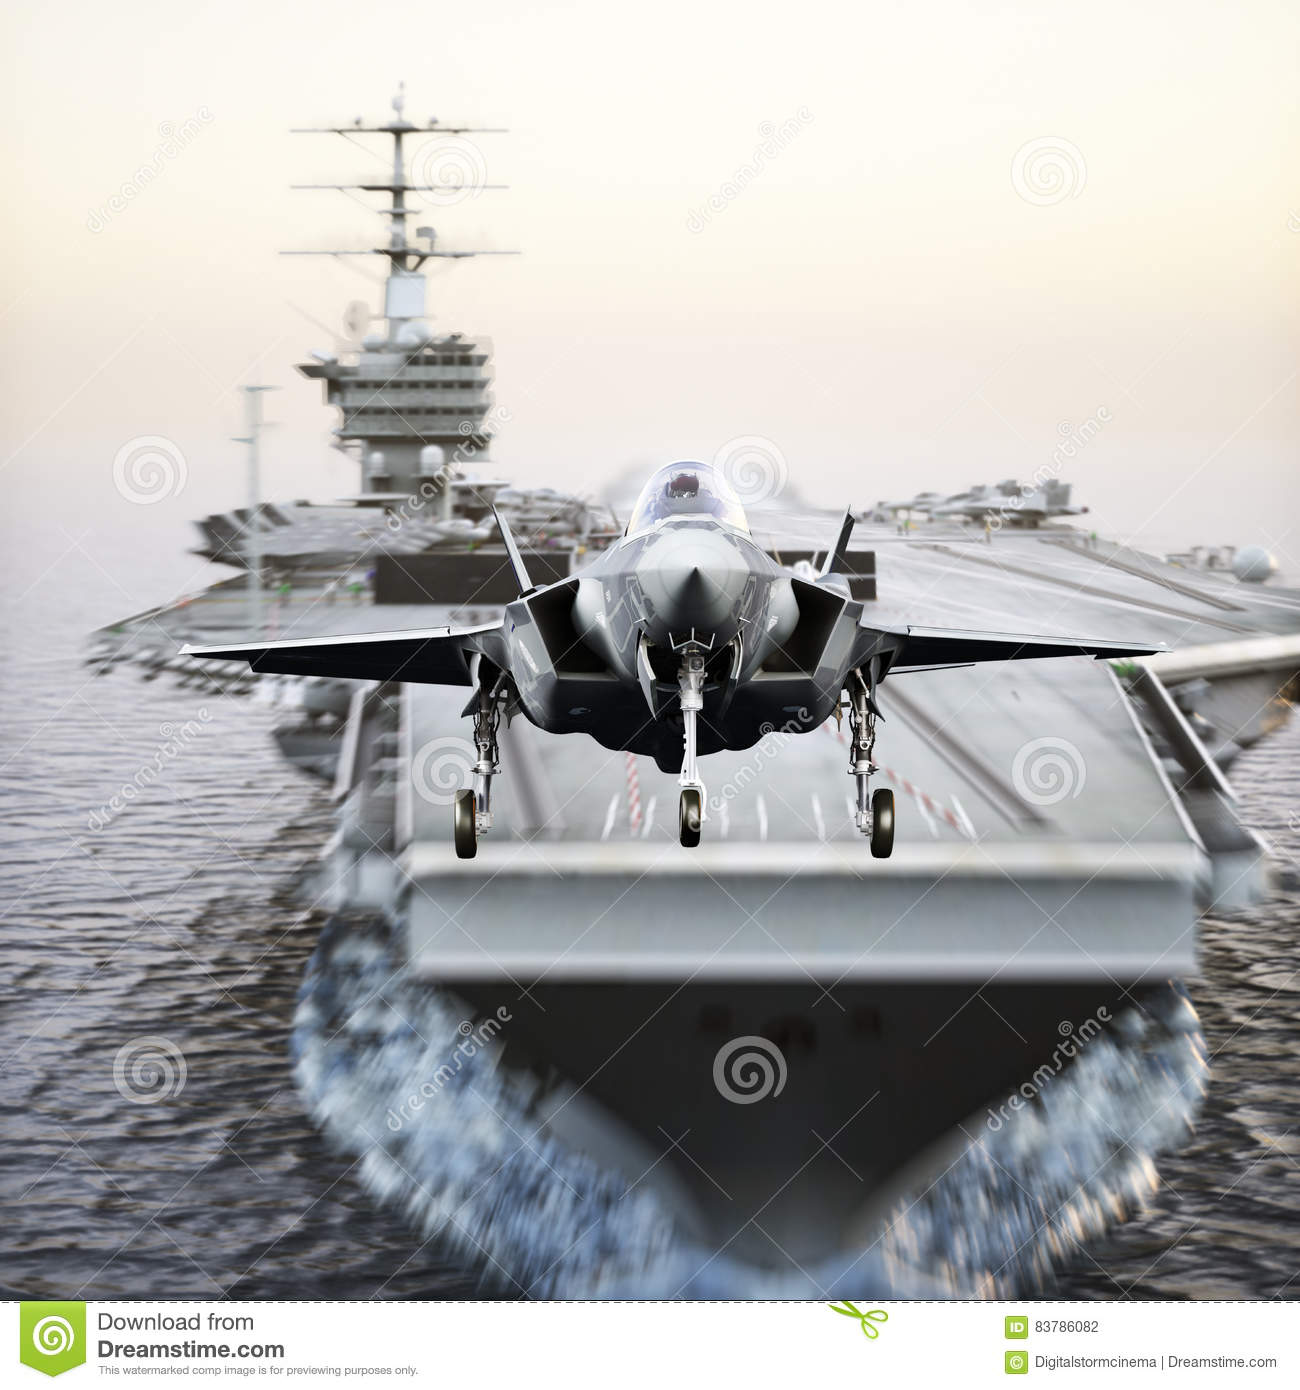 Carrier jet takeoff . Advanced aircraft jet taking off from a navy aircraft carrier.